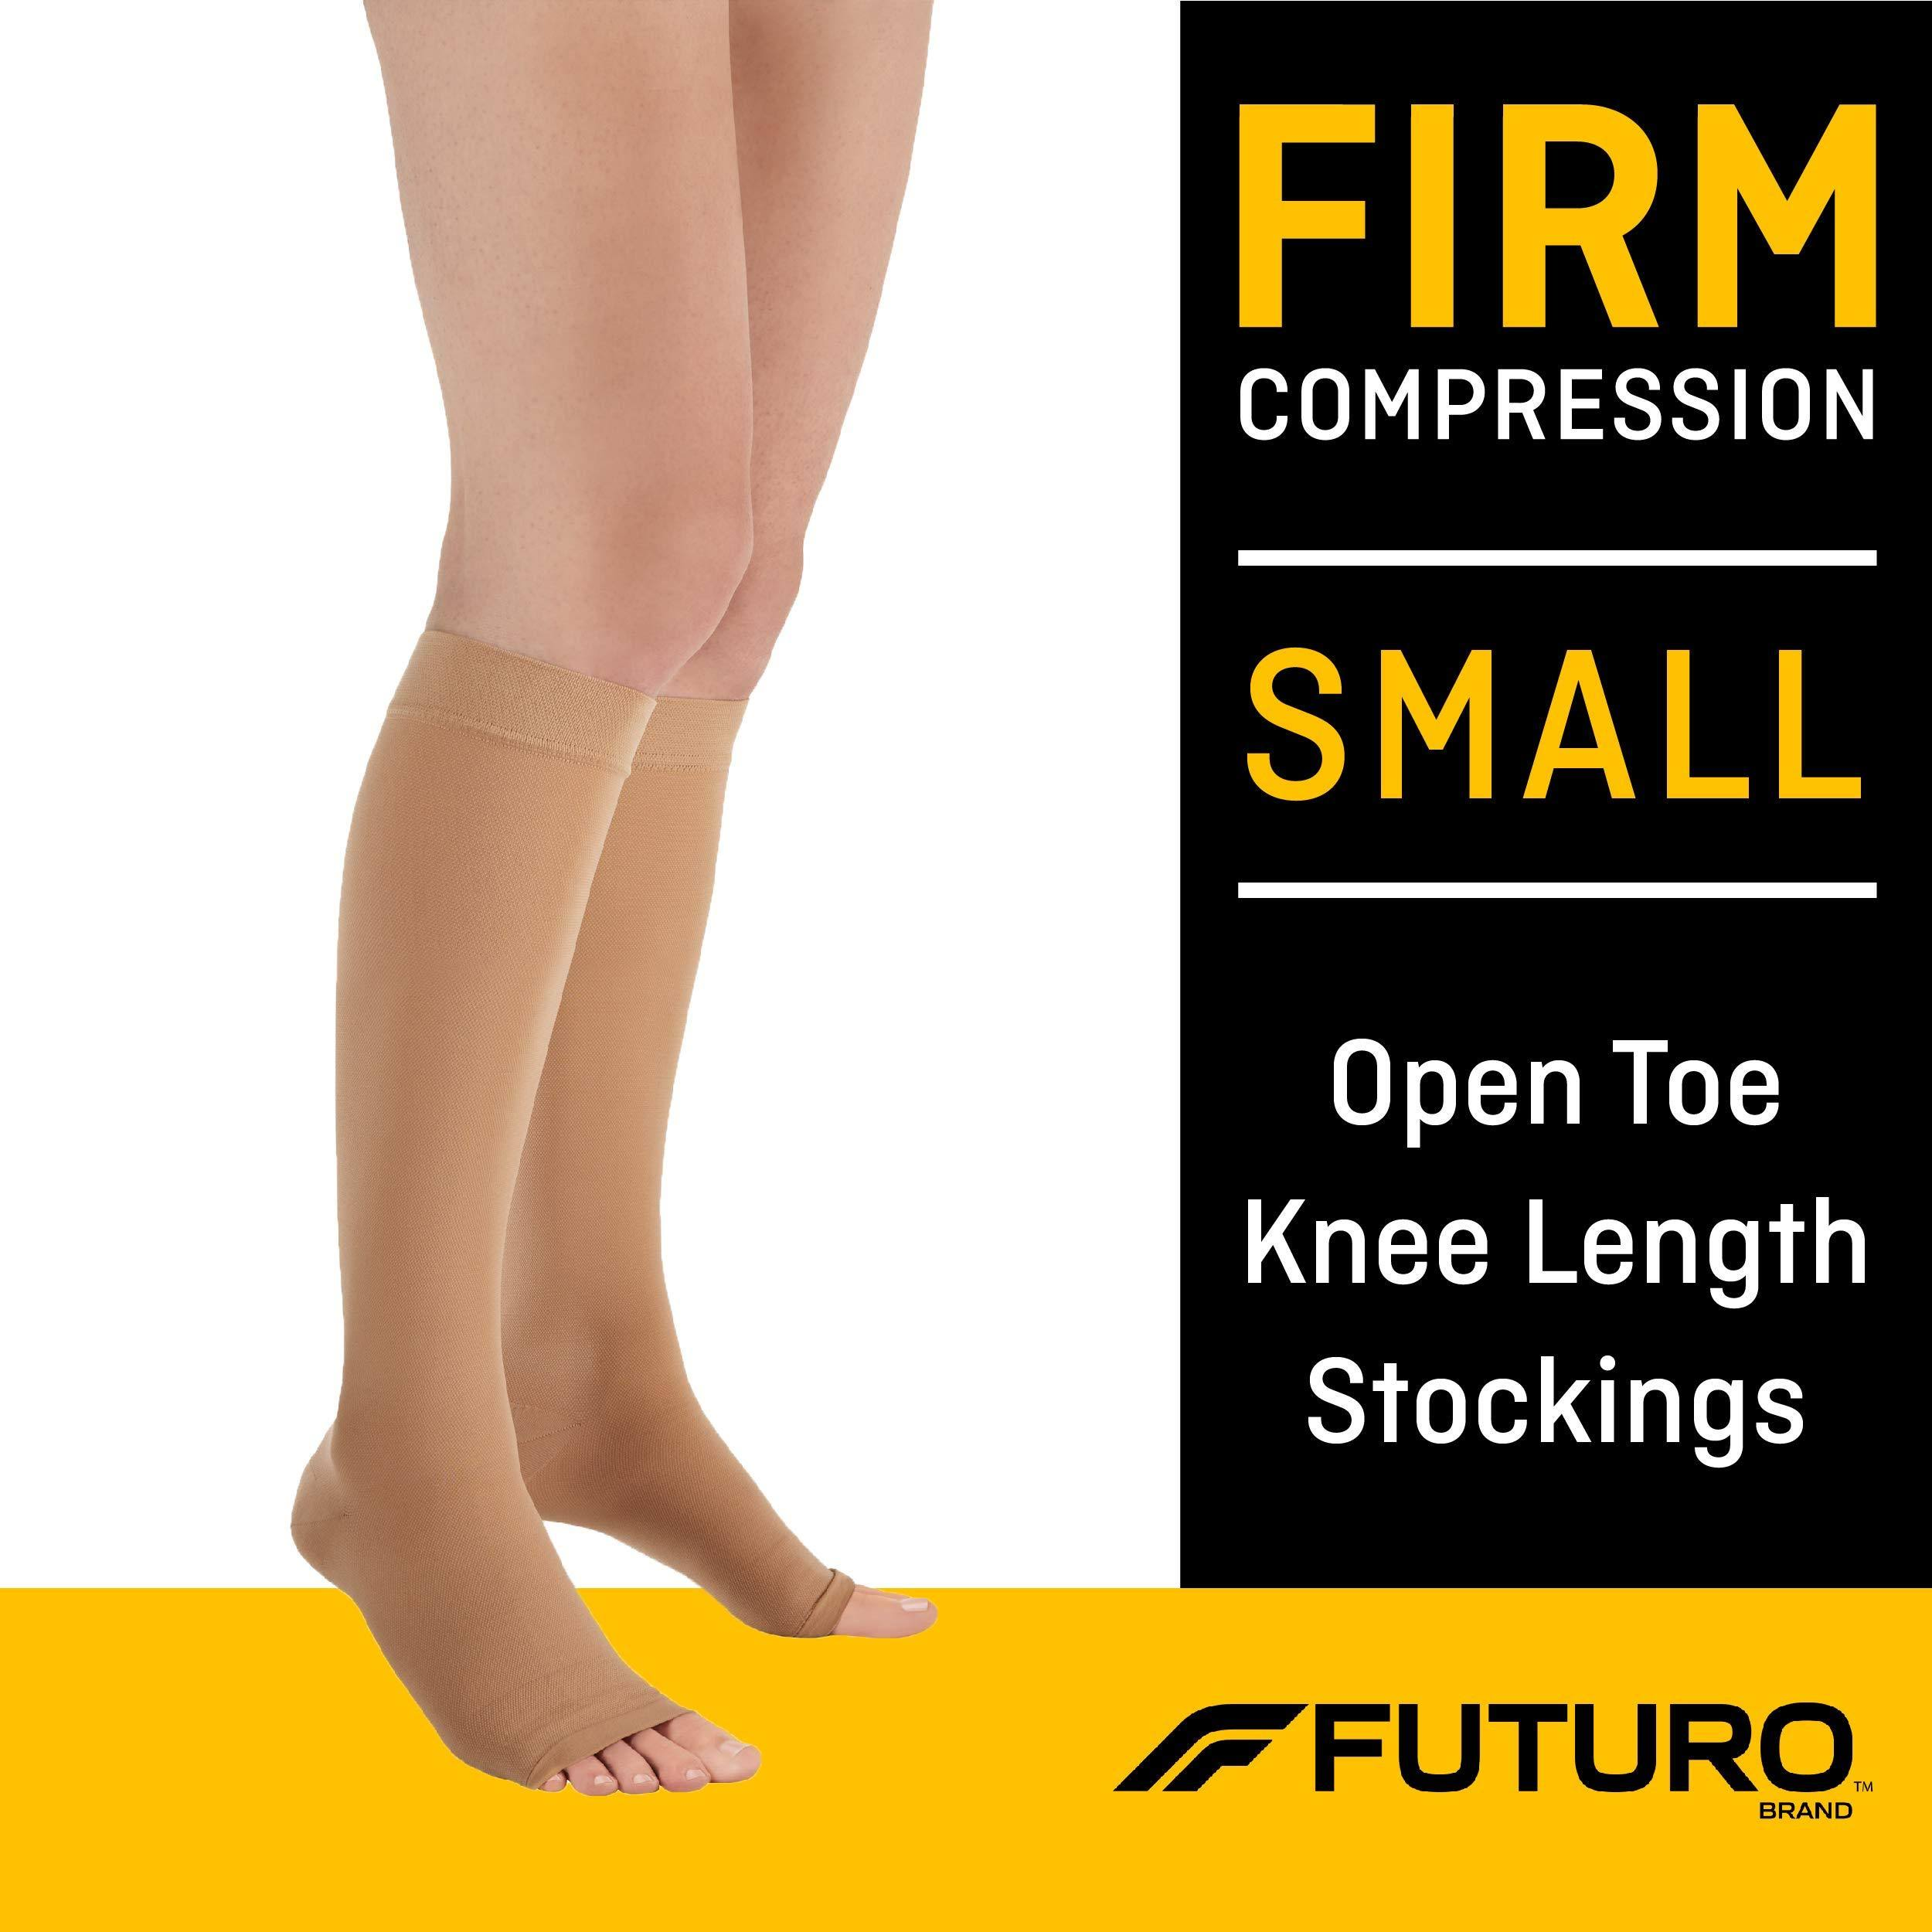 Futuro Knee Length Stockings Open Toe Firm Small Beige 1 Pair